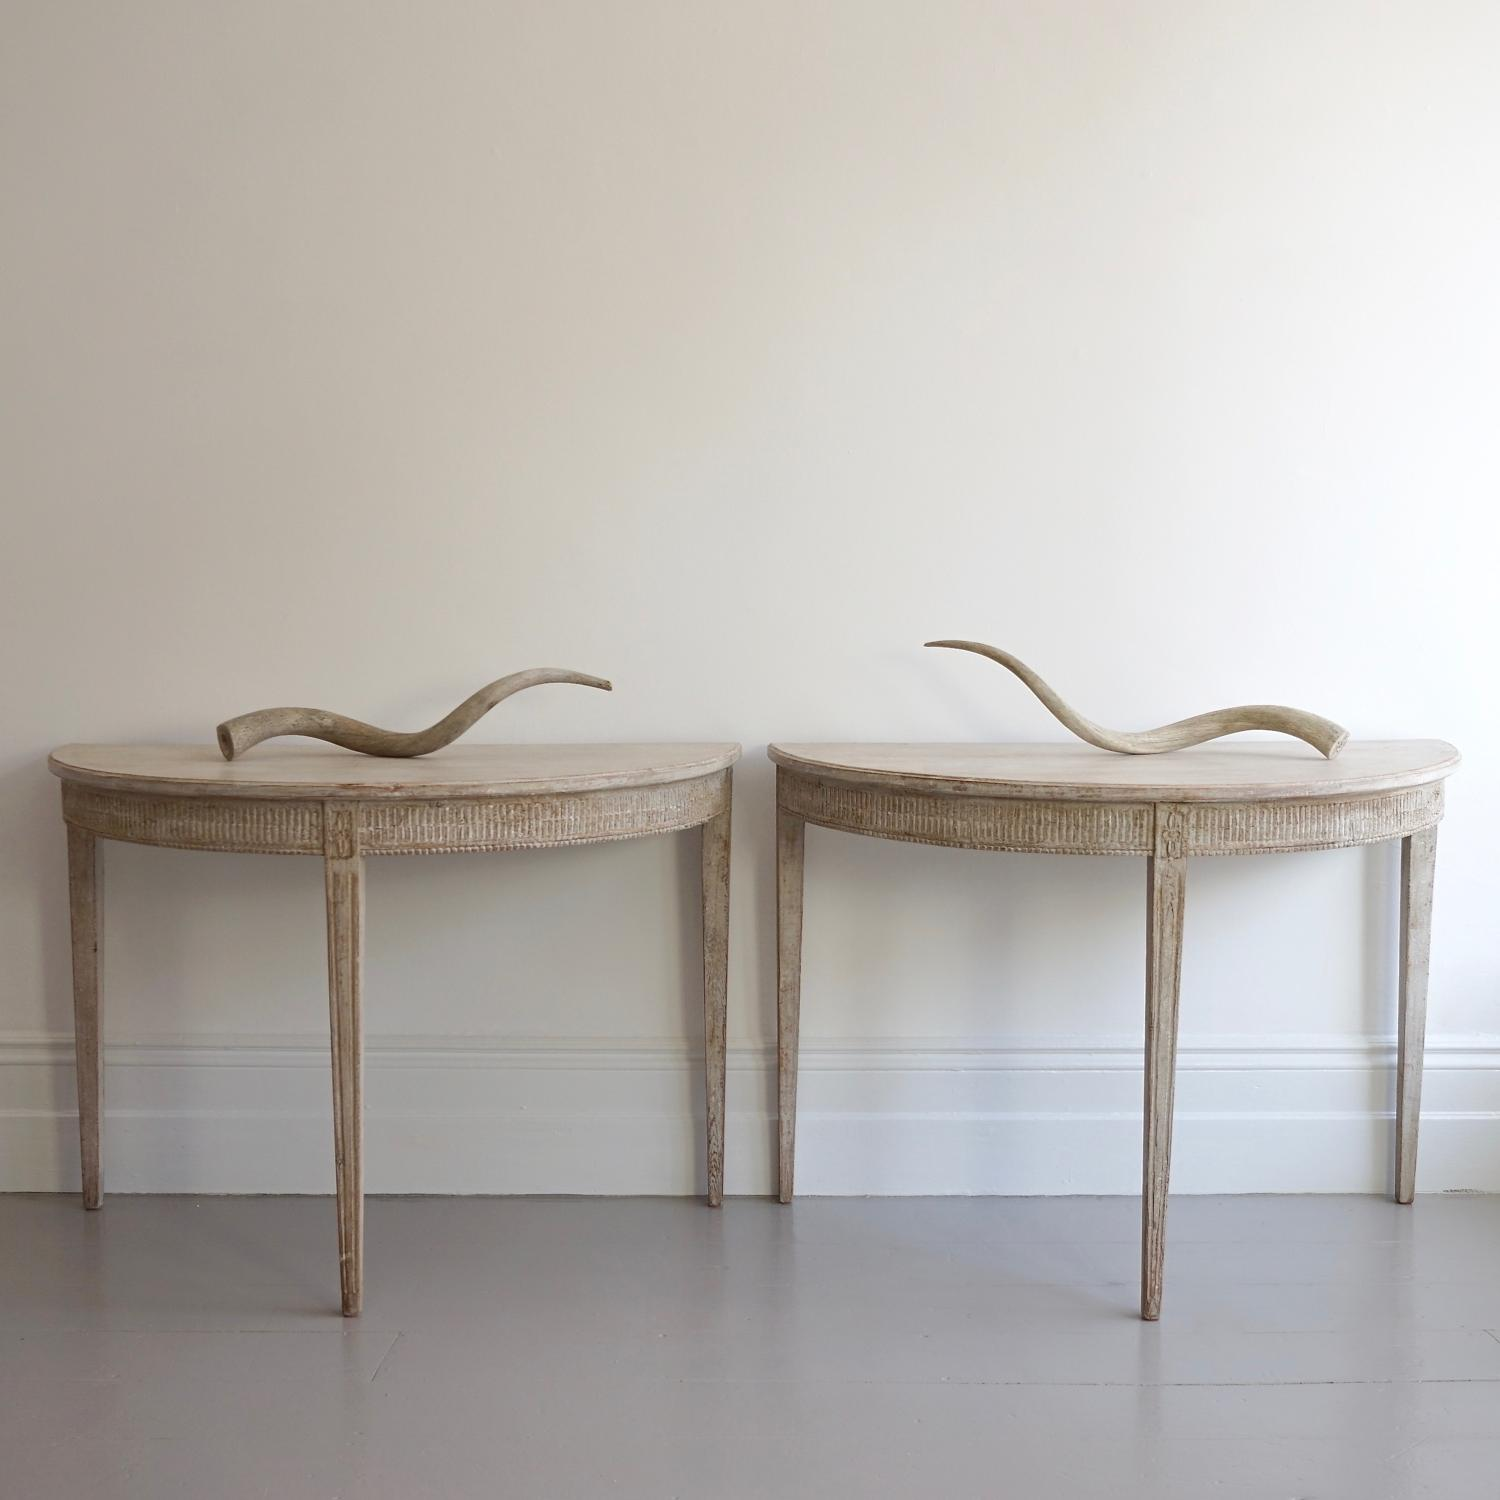 PAIR OF RICHLY CARVED GUSTAVIAN DEMILUNES